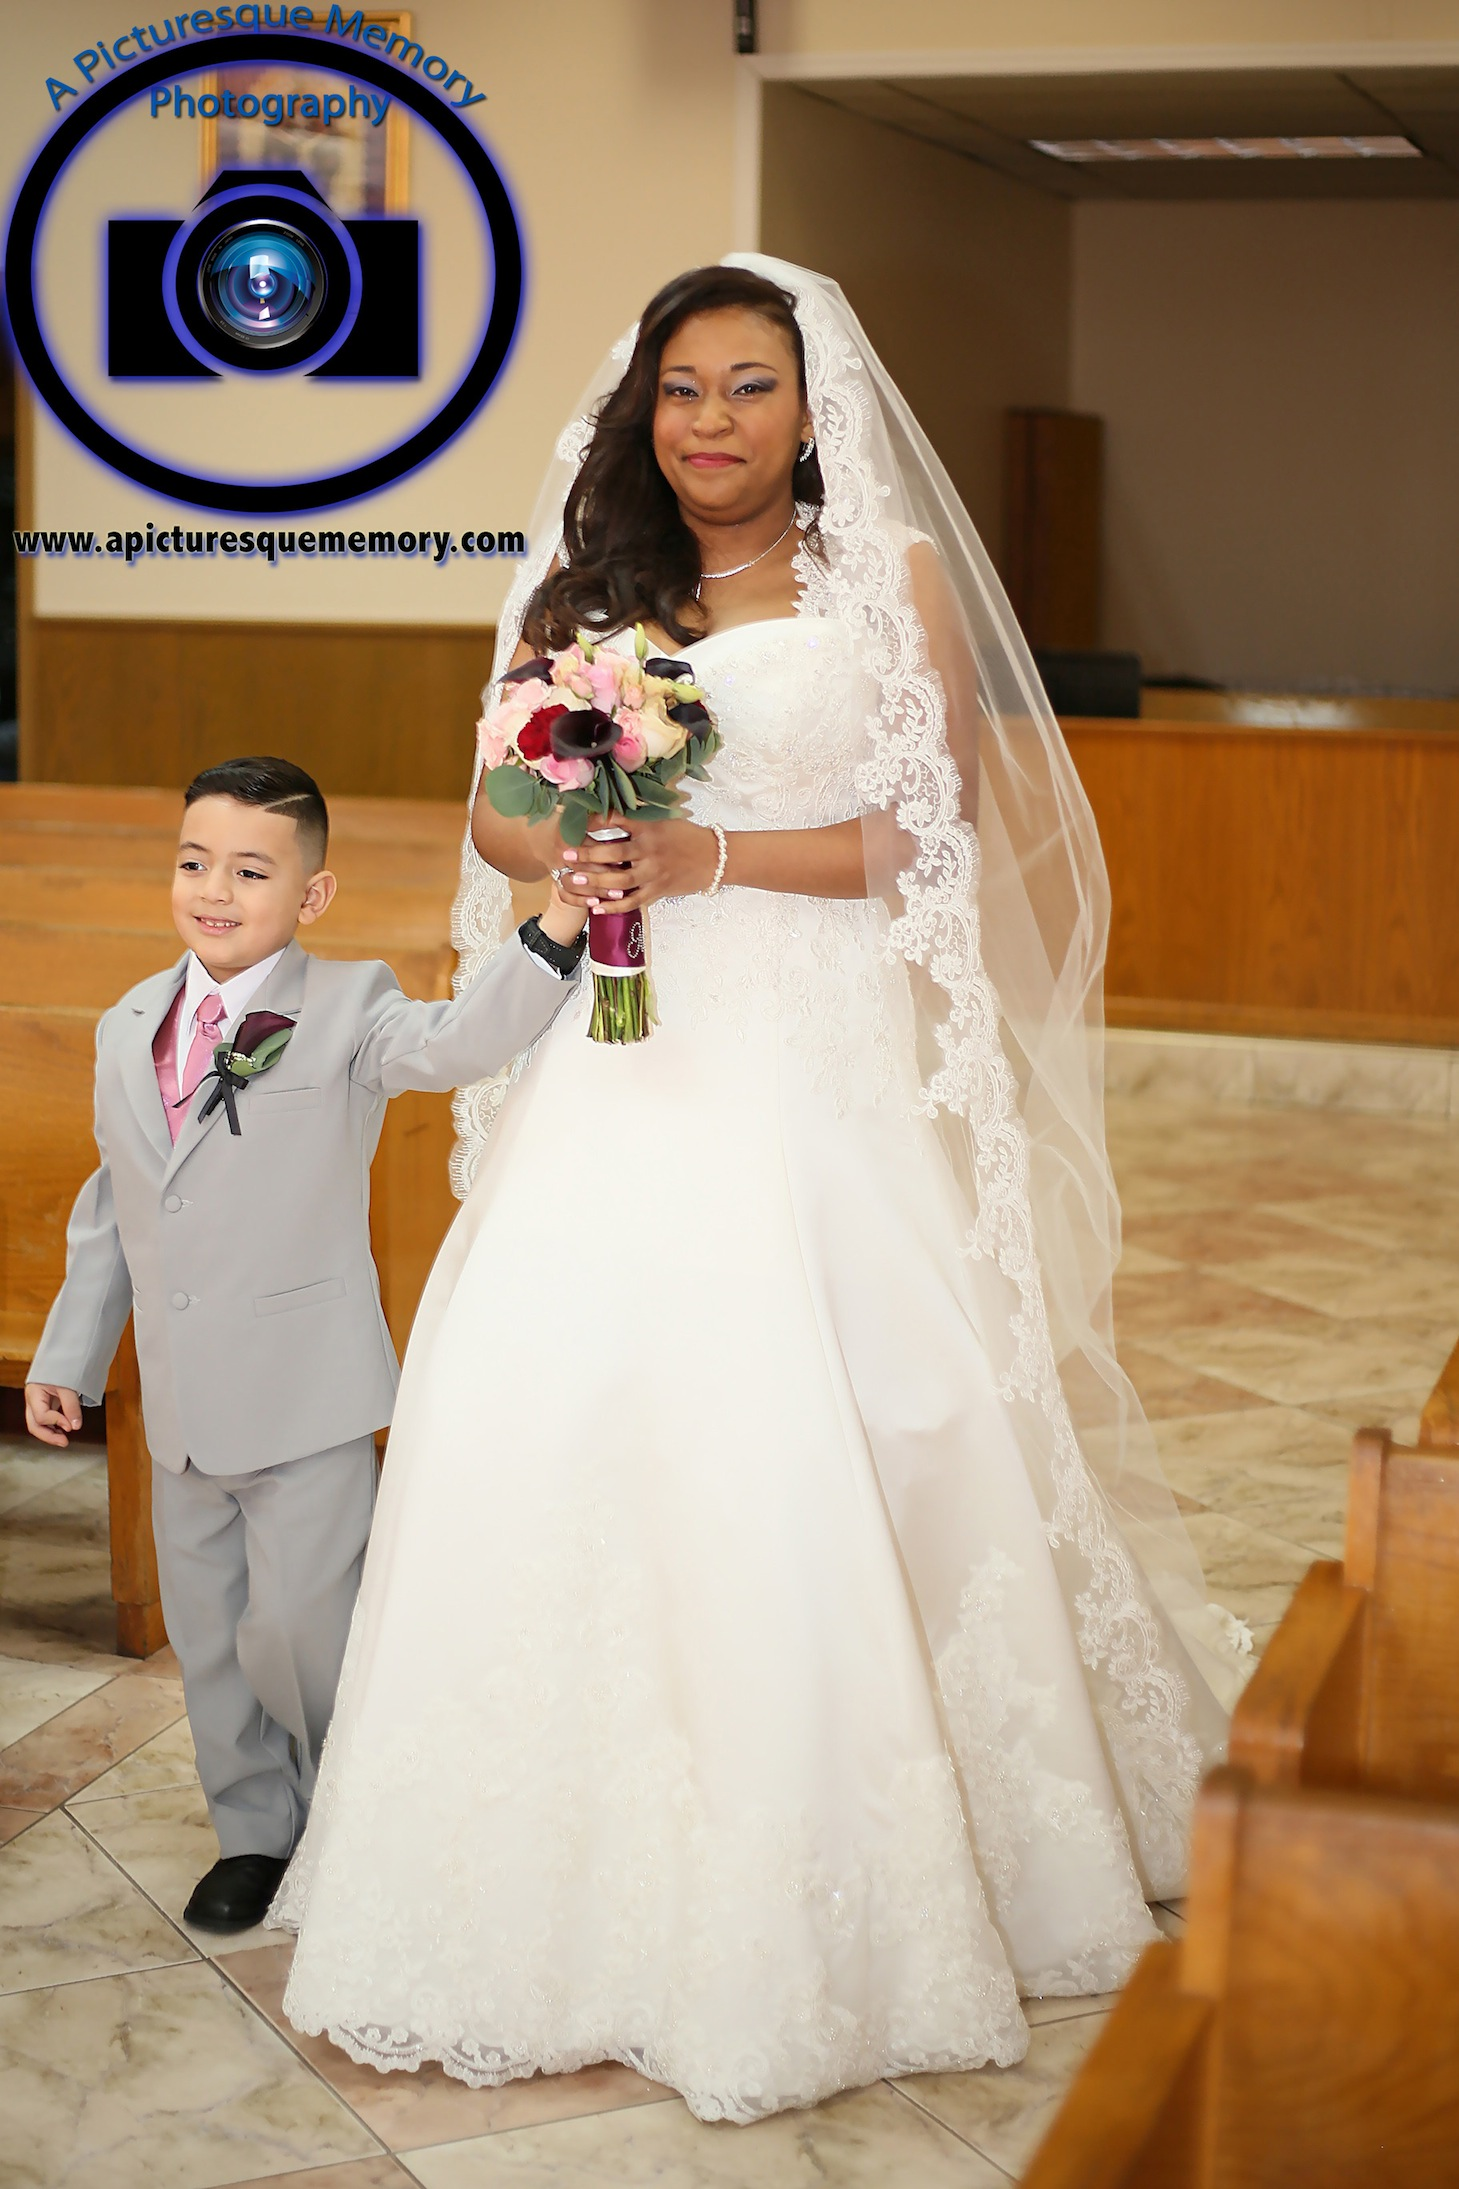 #njwedding, #njweddingphotography, #newbrunswickweddingphotographer#weddingphotos, #apicturesquememoryphotography, #ourladyofmountcarmelweddingphotographer, #weddingceremony, #bride, #bridetobe, #bridesbouquet, #bridewalkingdownaisle